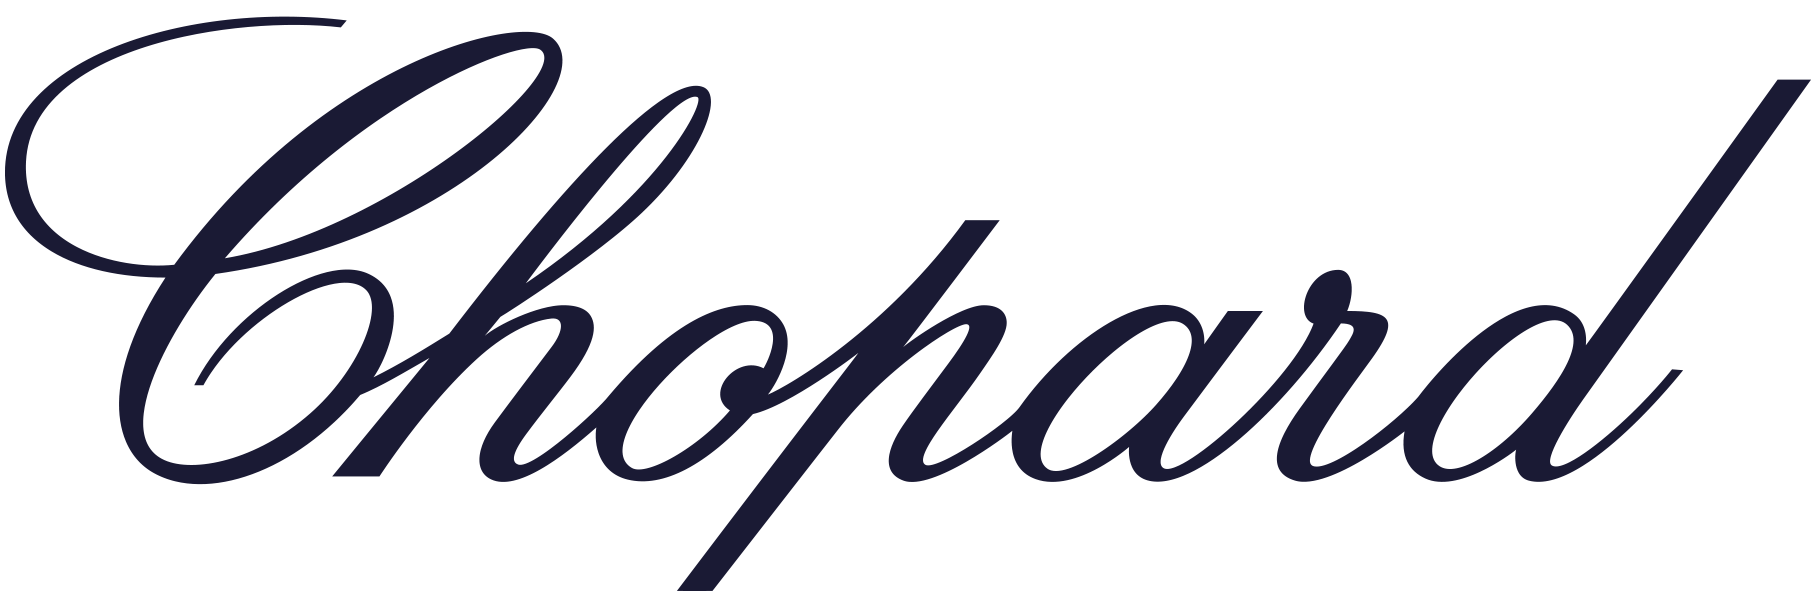 chopard-logo-new.png